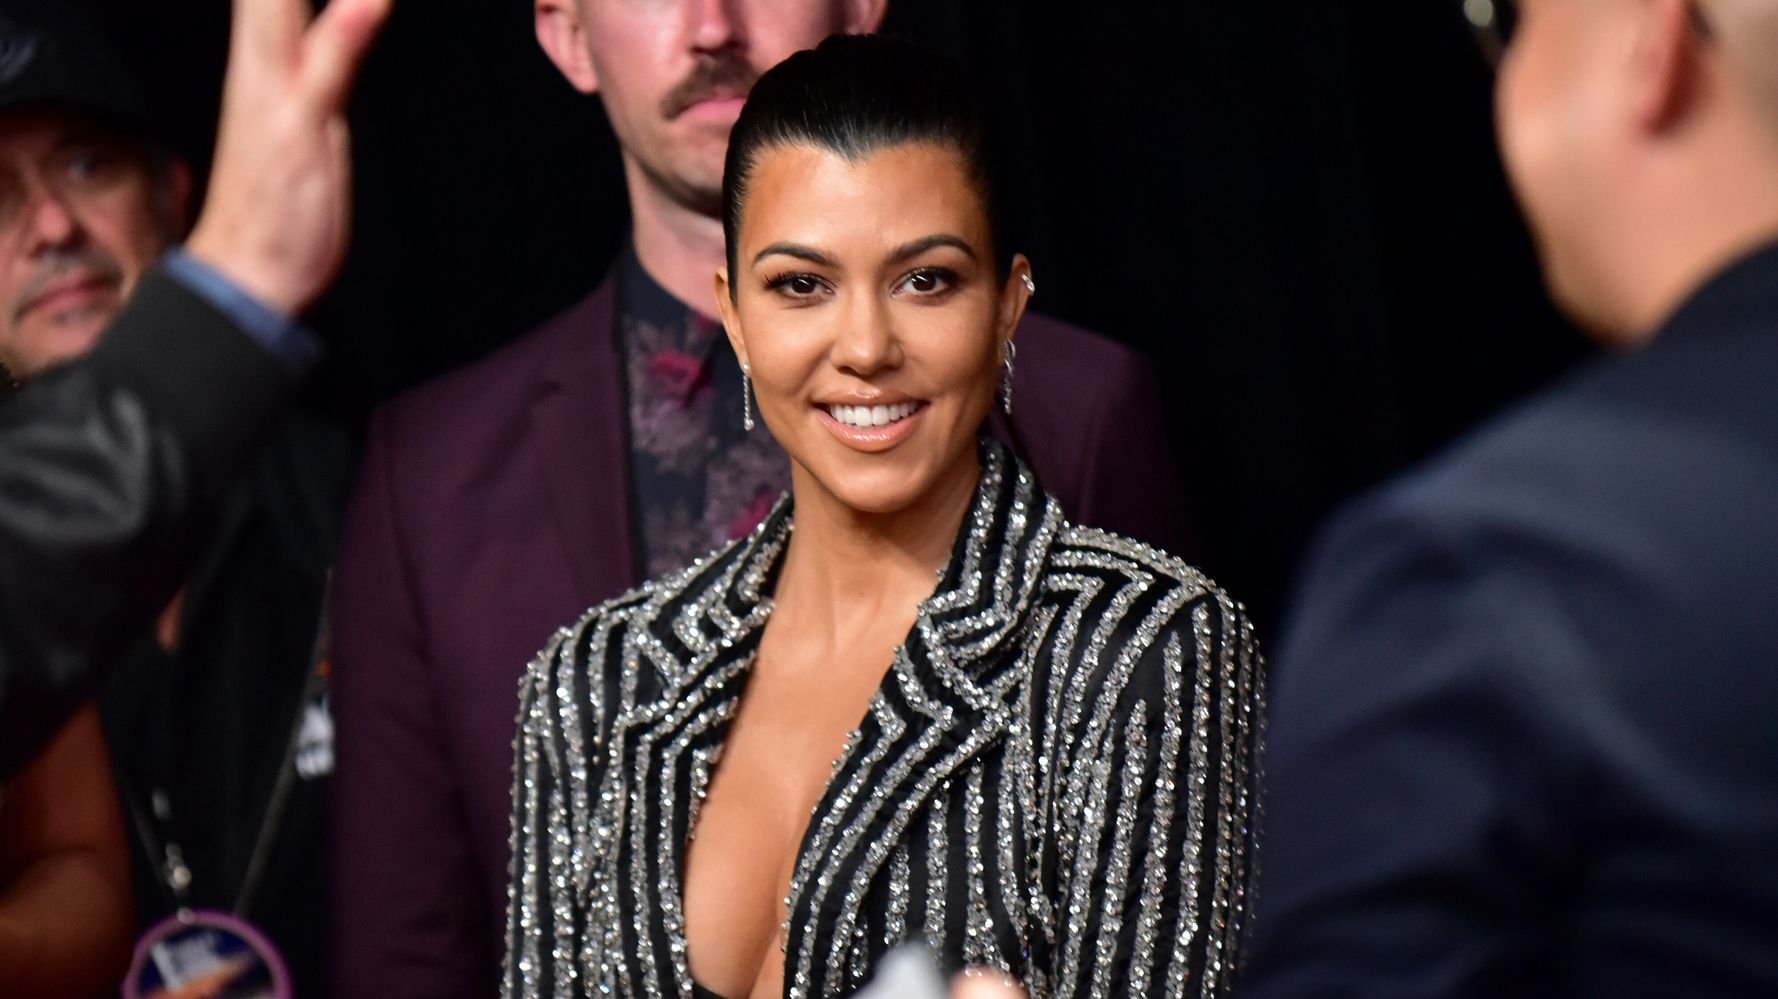 Westlake Legal Group 5e29b7ff2400009c03c97398 Kourtney Kardashian Addresses Pregnancy Speculation